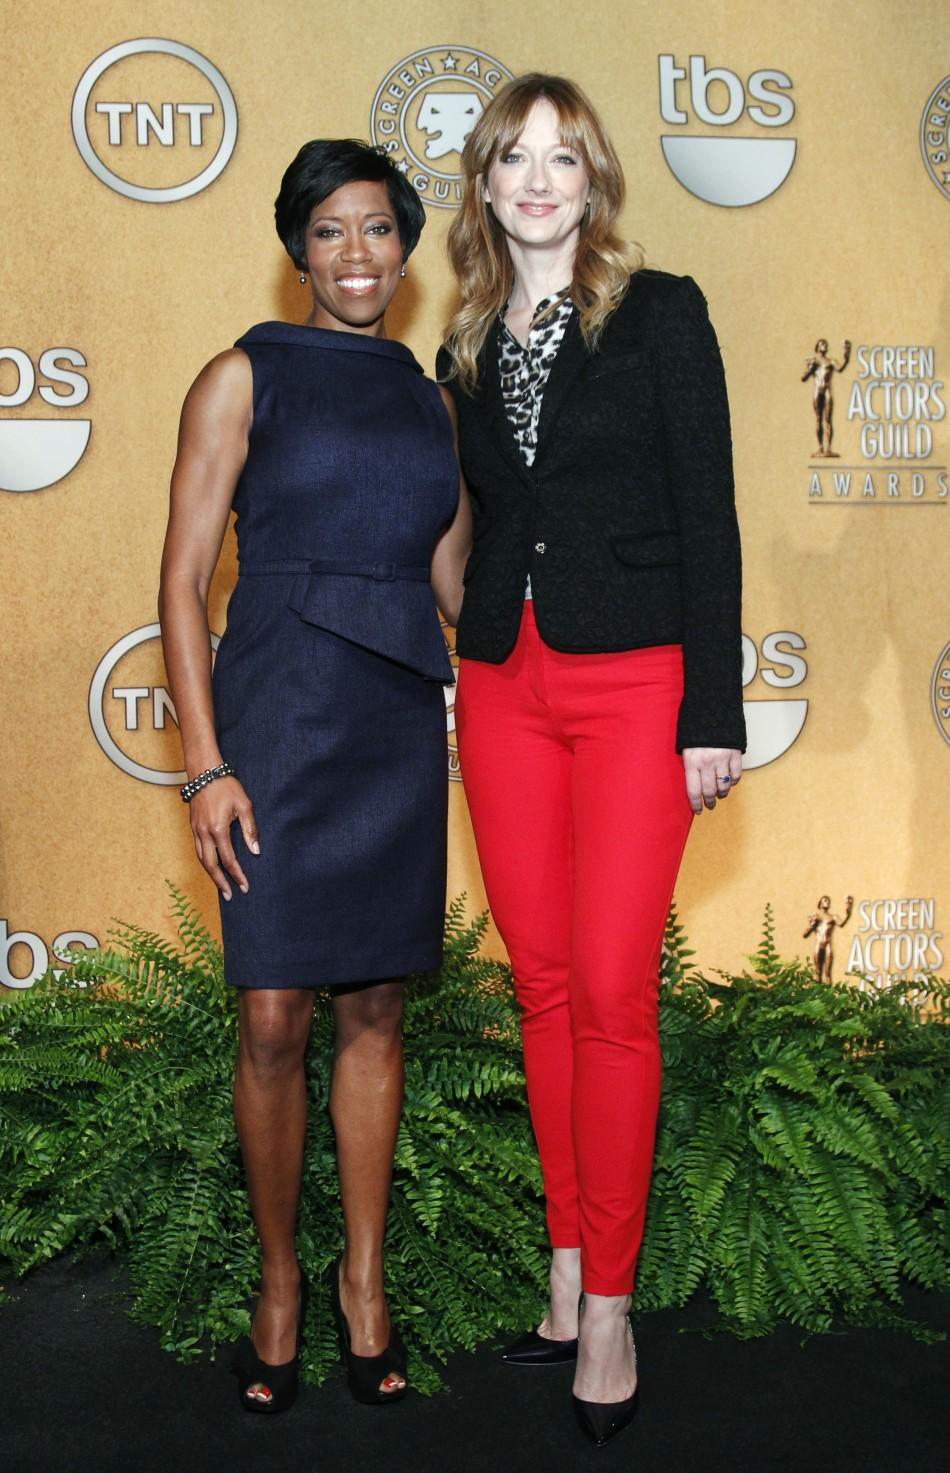 Actresses Regina King (L) and Judy Greer (R) pose together after announcing nominees for the 18th Annual Screen Actors Guild Awards in West Hollywood, California